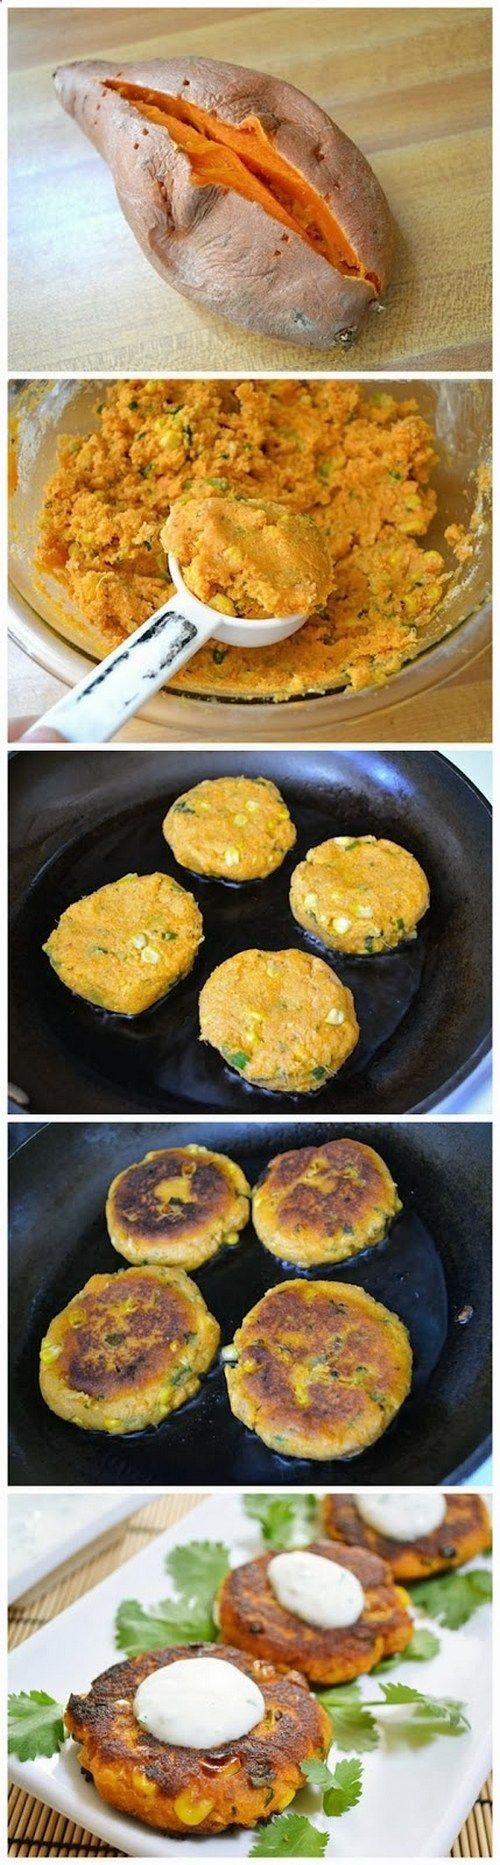 Sweet Potato Corn Cakes with Garlic Dipping Sauce.